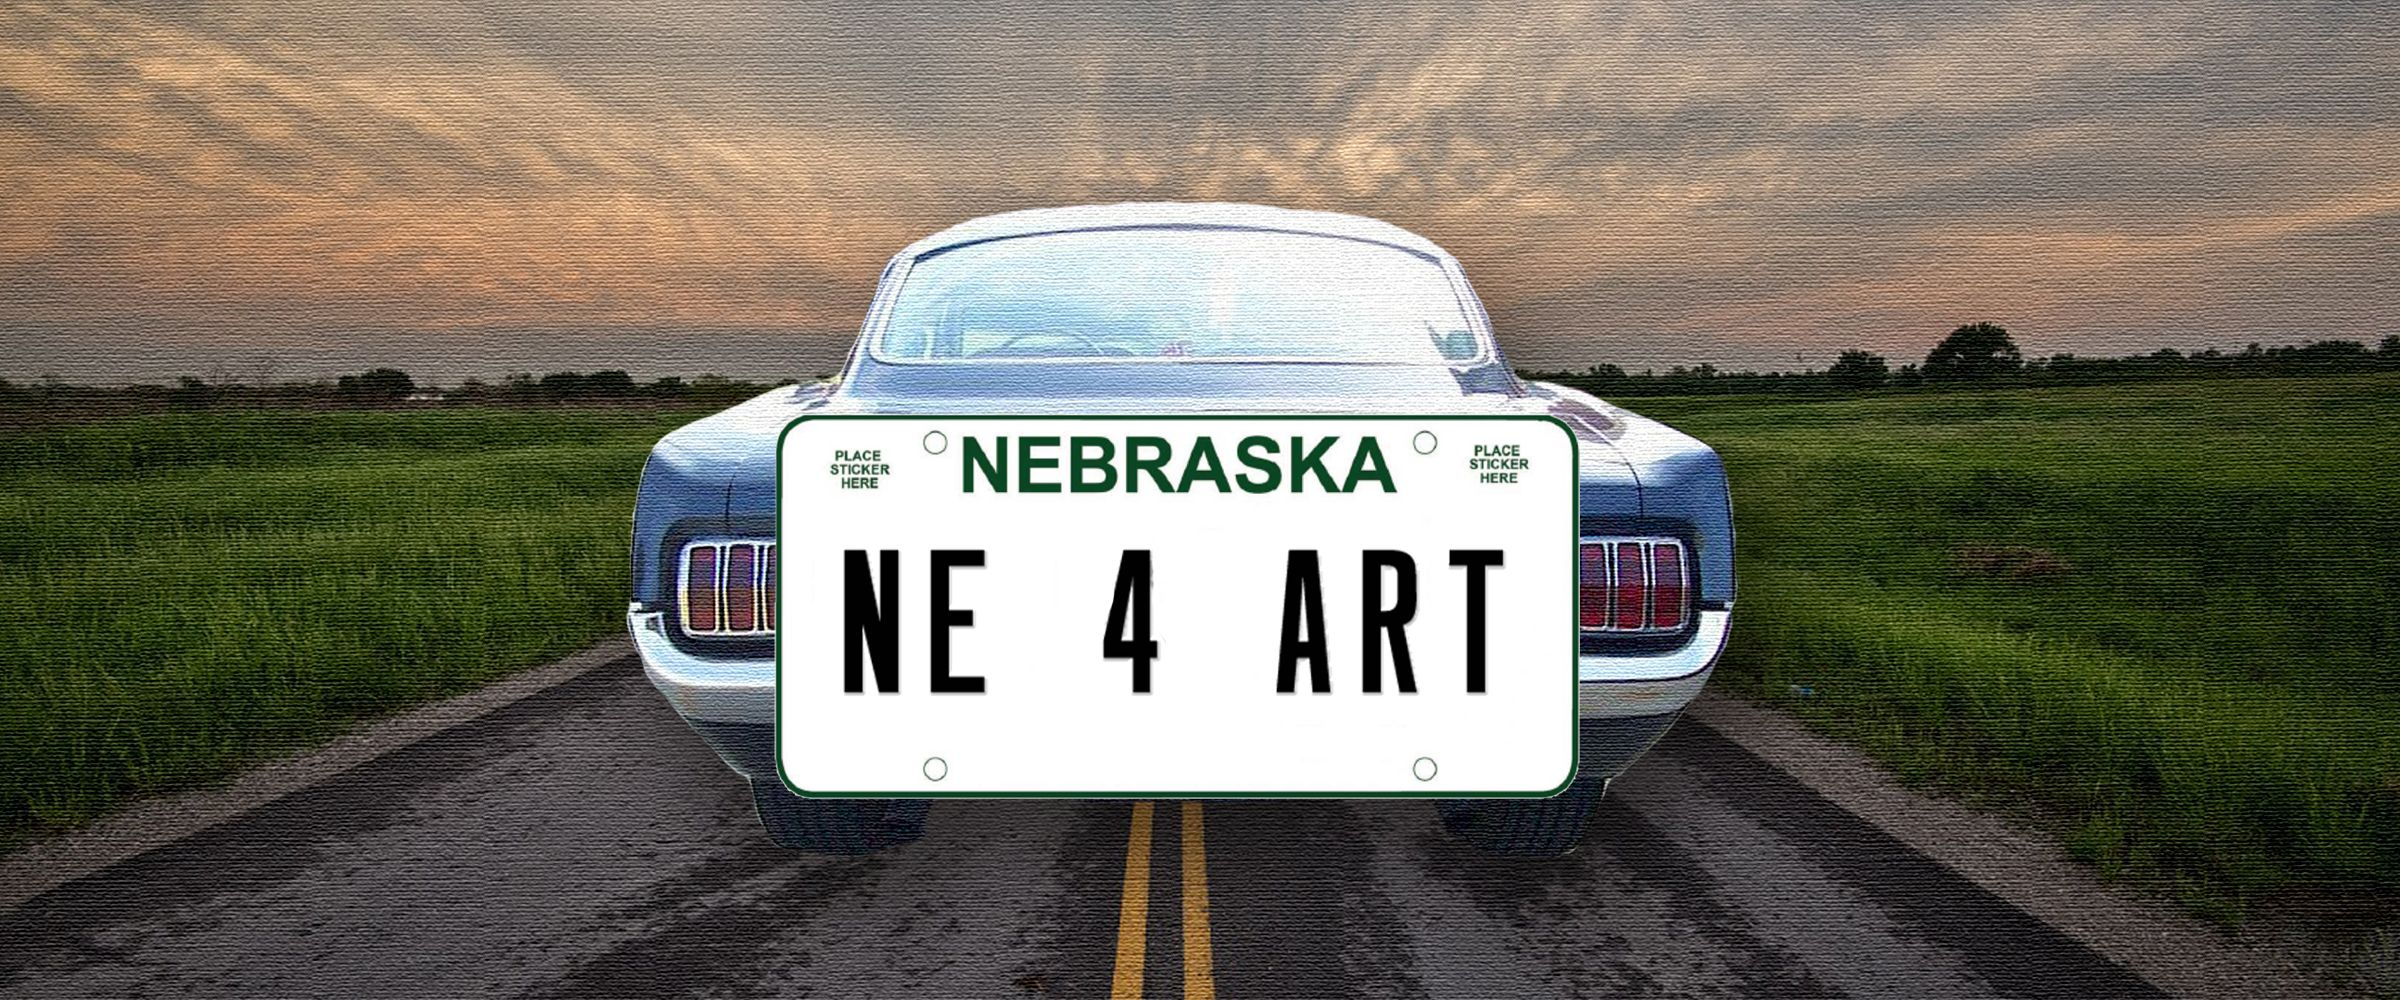 SUPPORT THE ARTS LICENSE PLATE